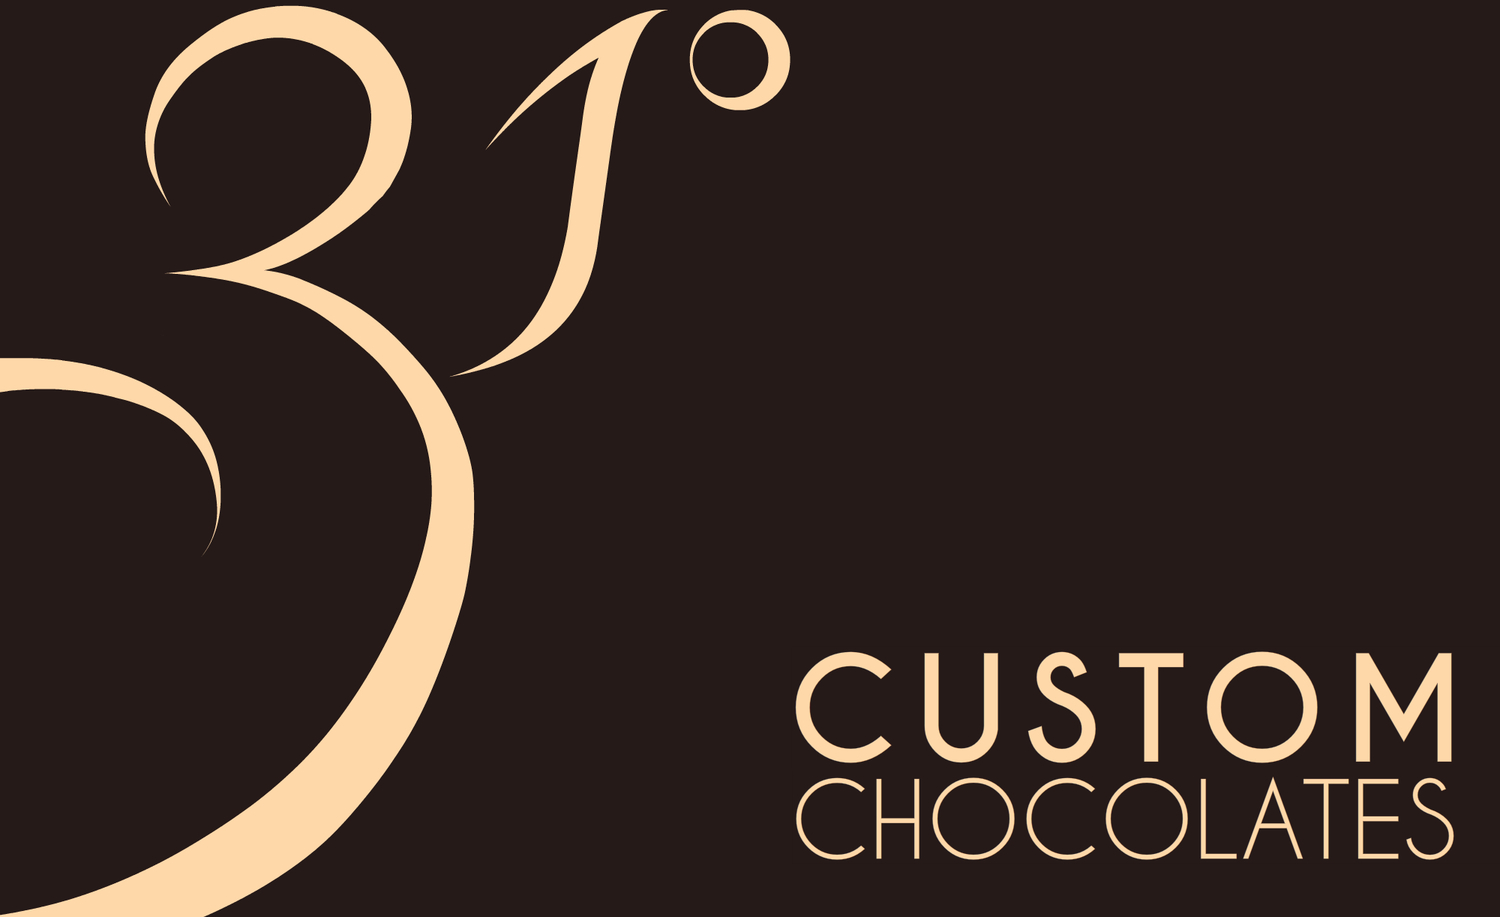 31 Degrees Custom Chocolates